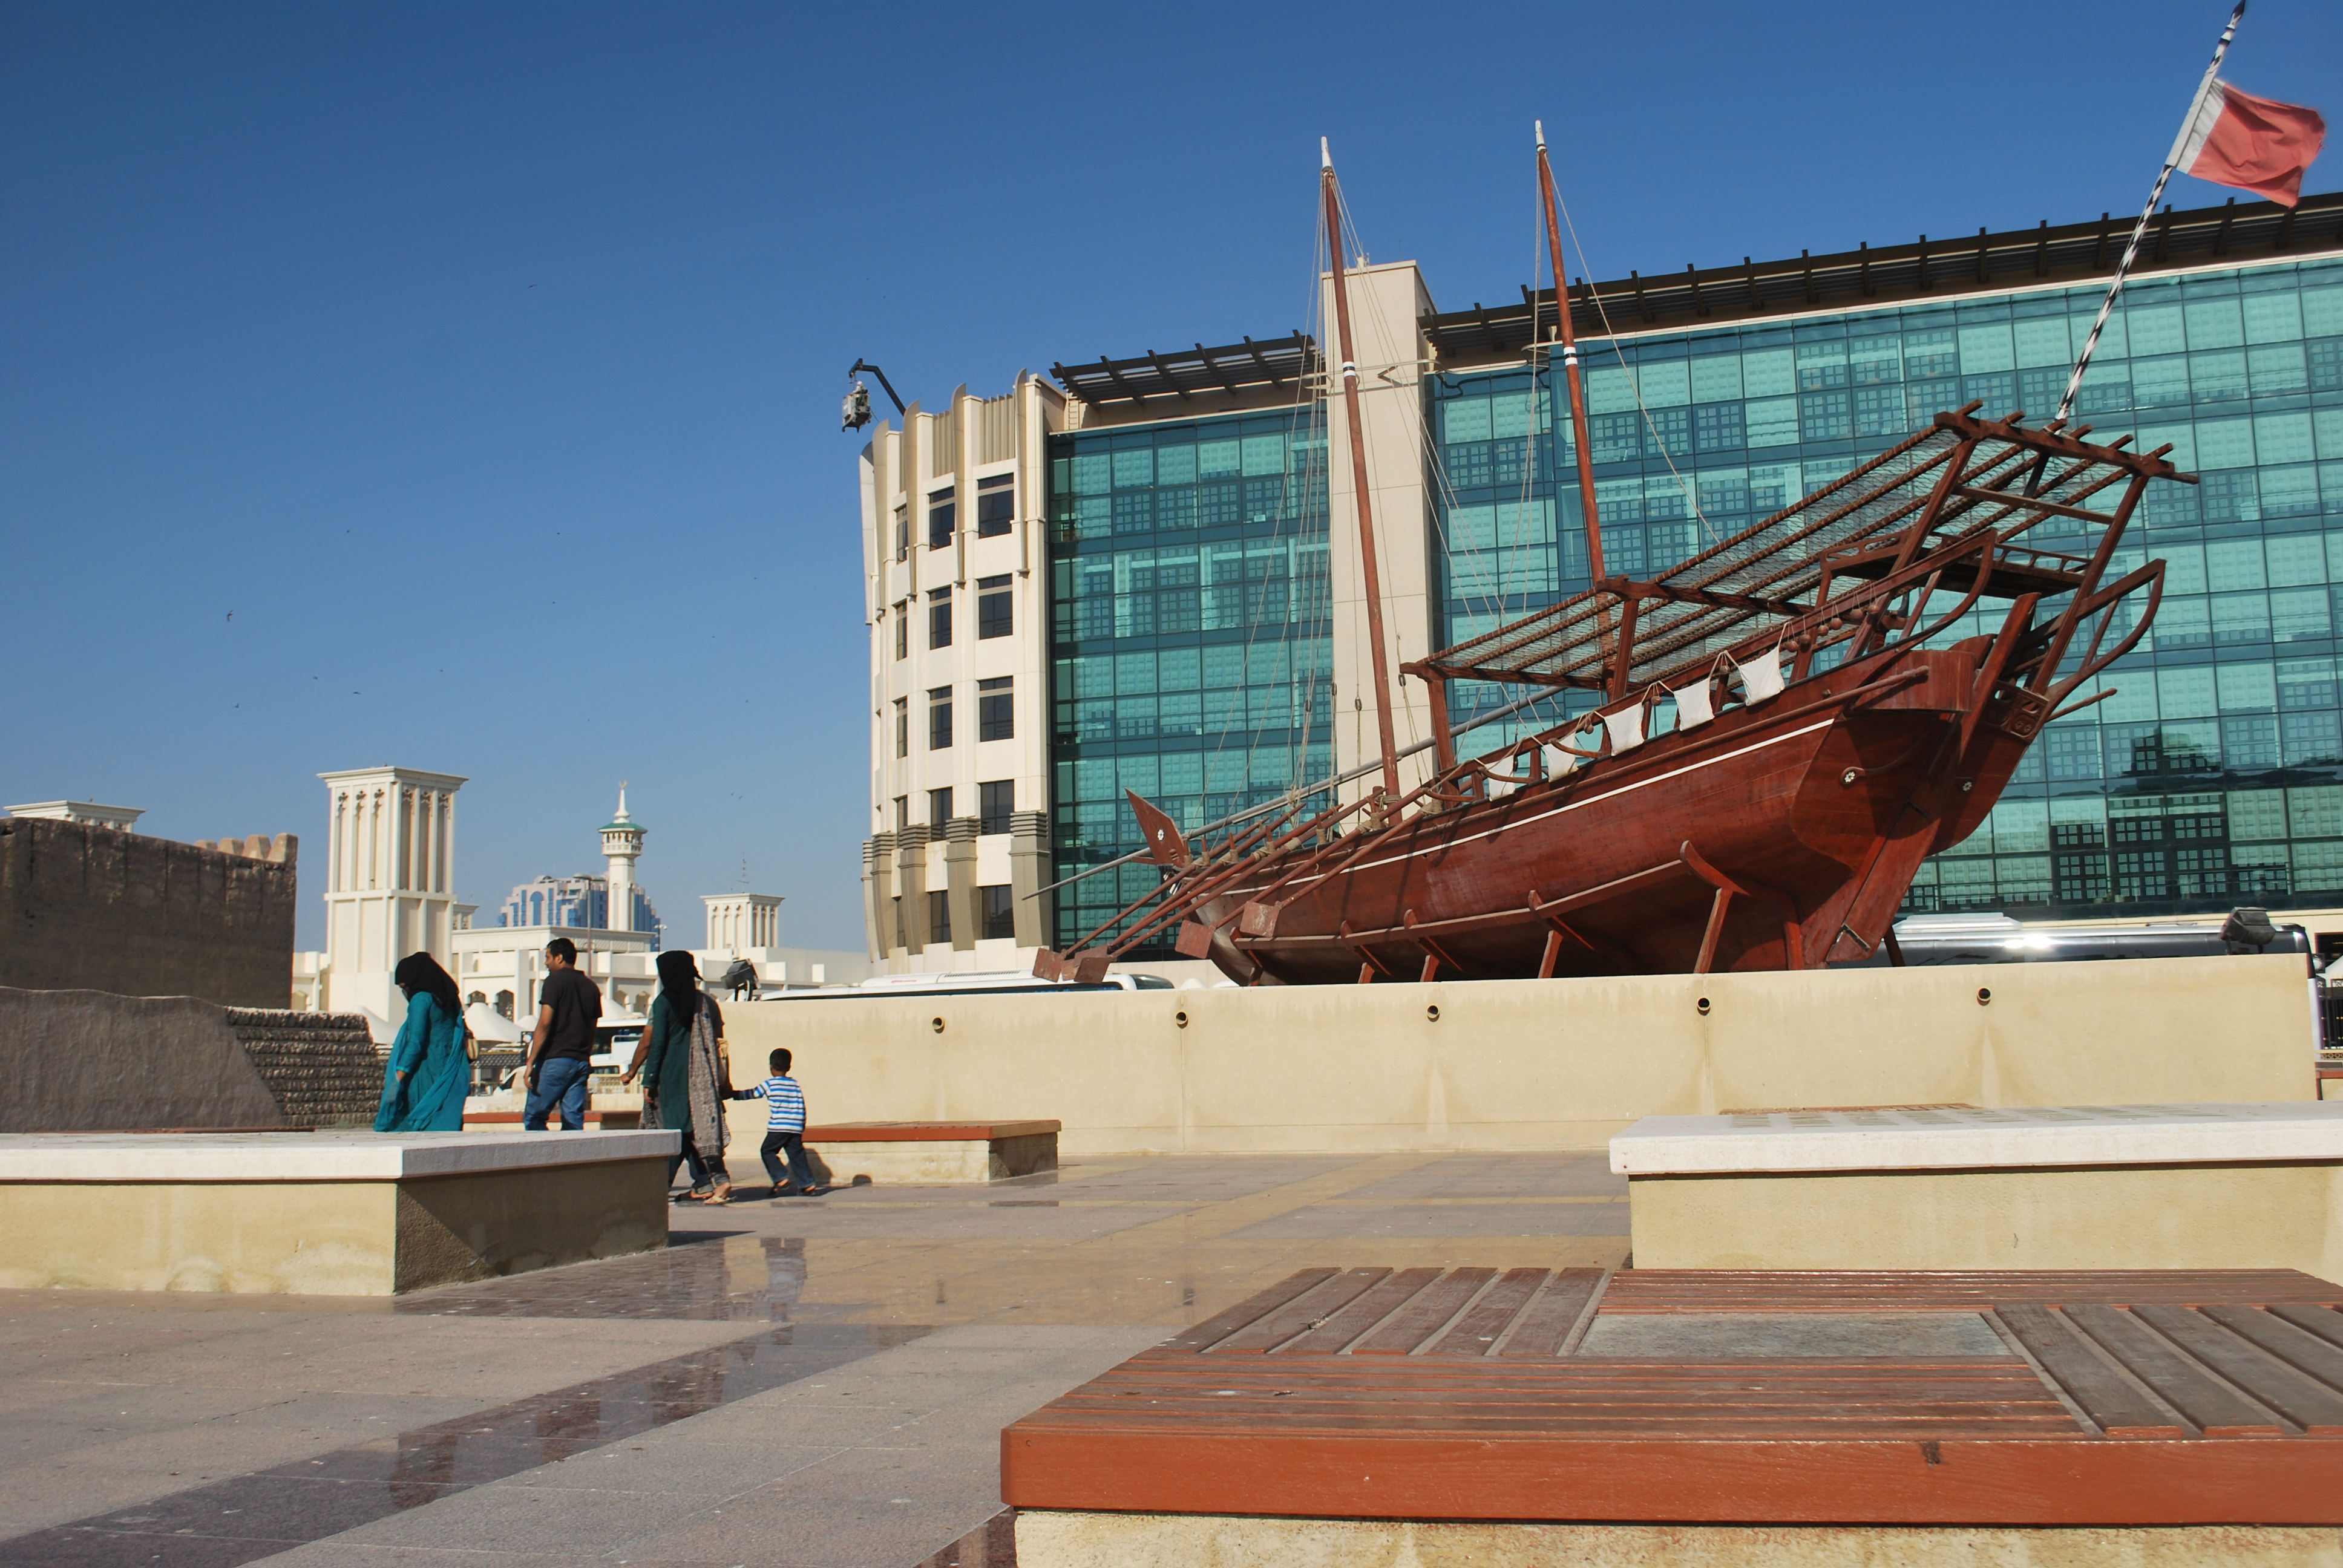 A dhow and a modern building juxtaposed in Dubai